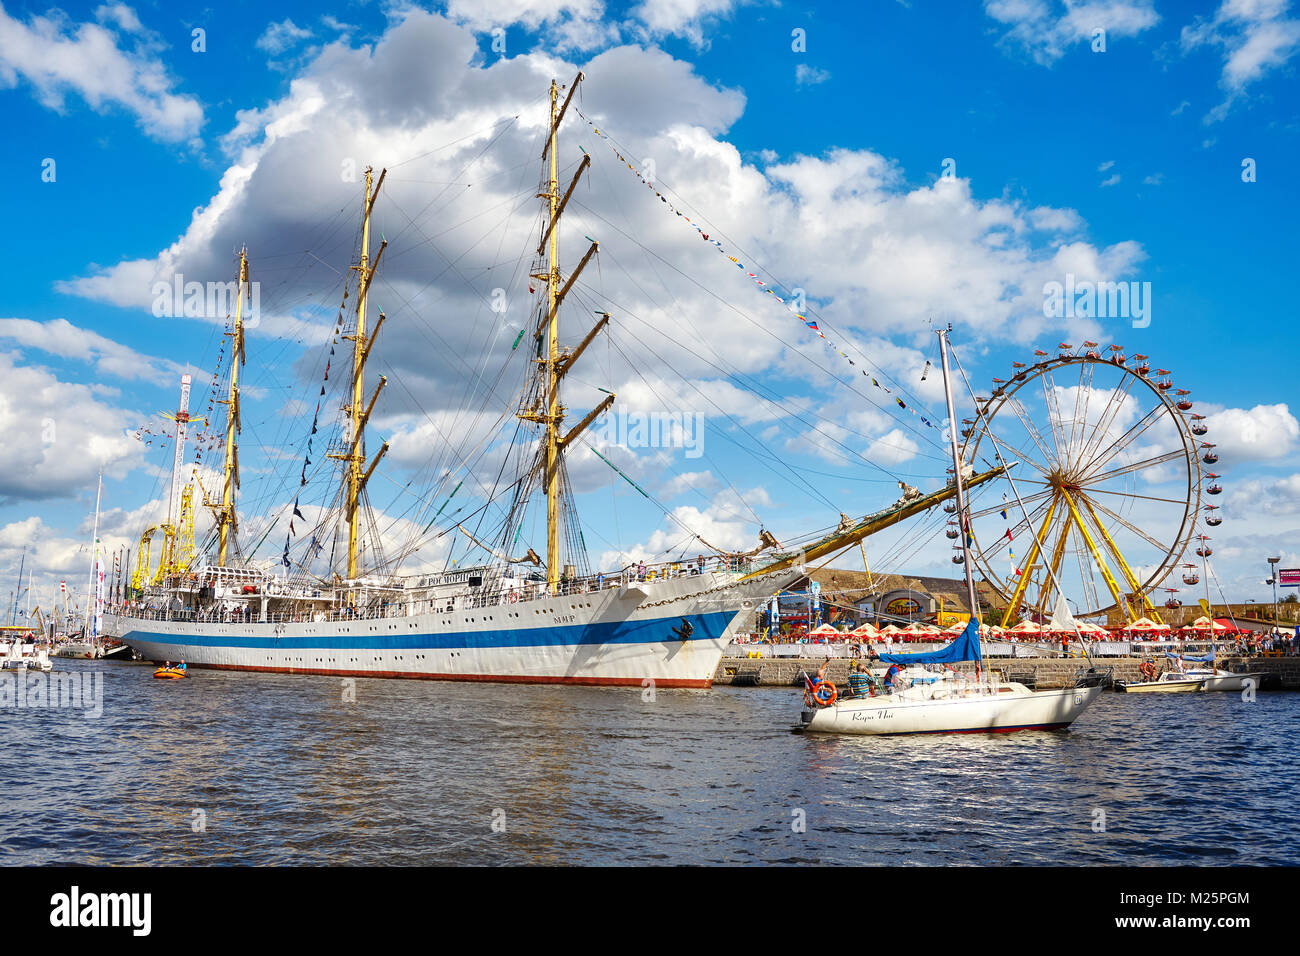 Szczecin, Poland - August 06, 2017: STS Mir, three-masted full rigged training ship at the final of The Tall Ships - Stock Image